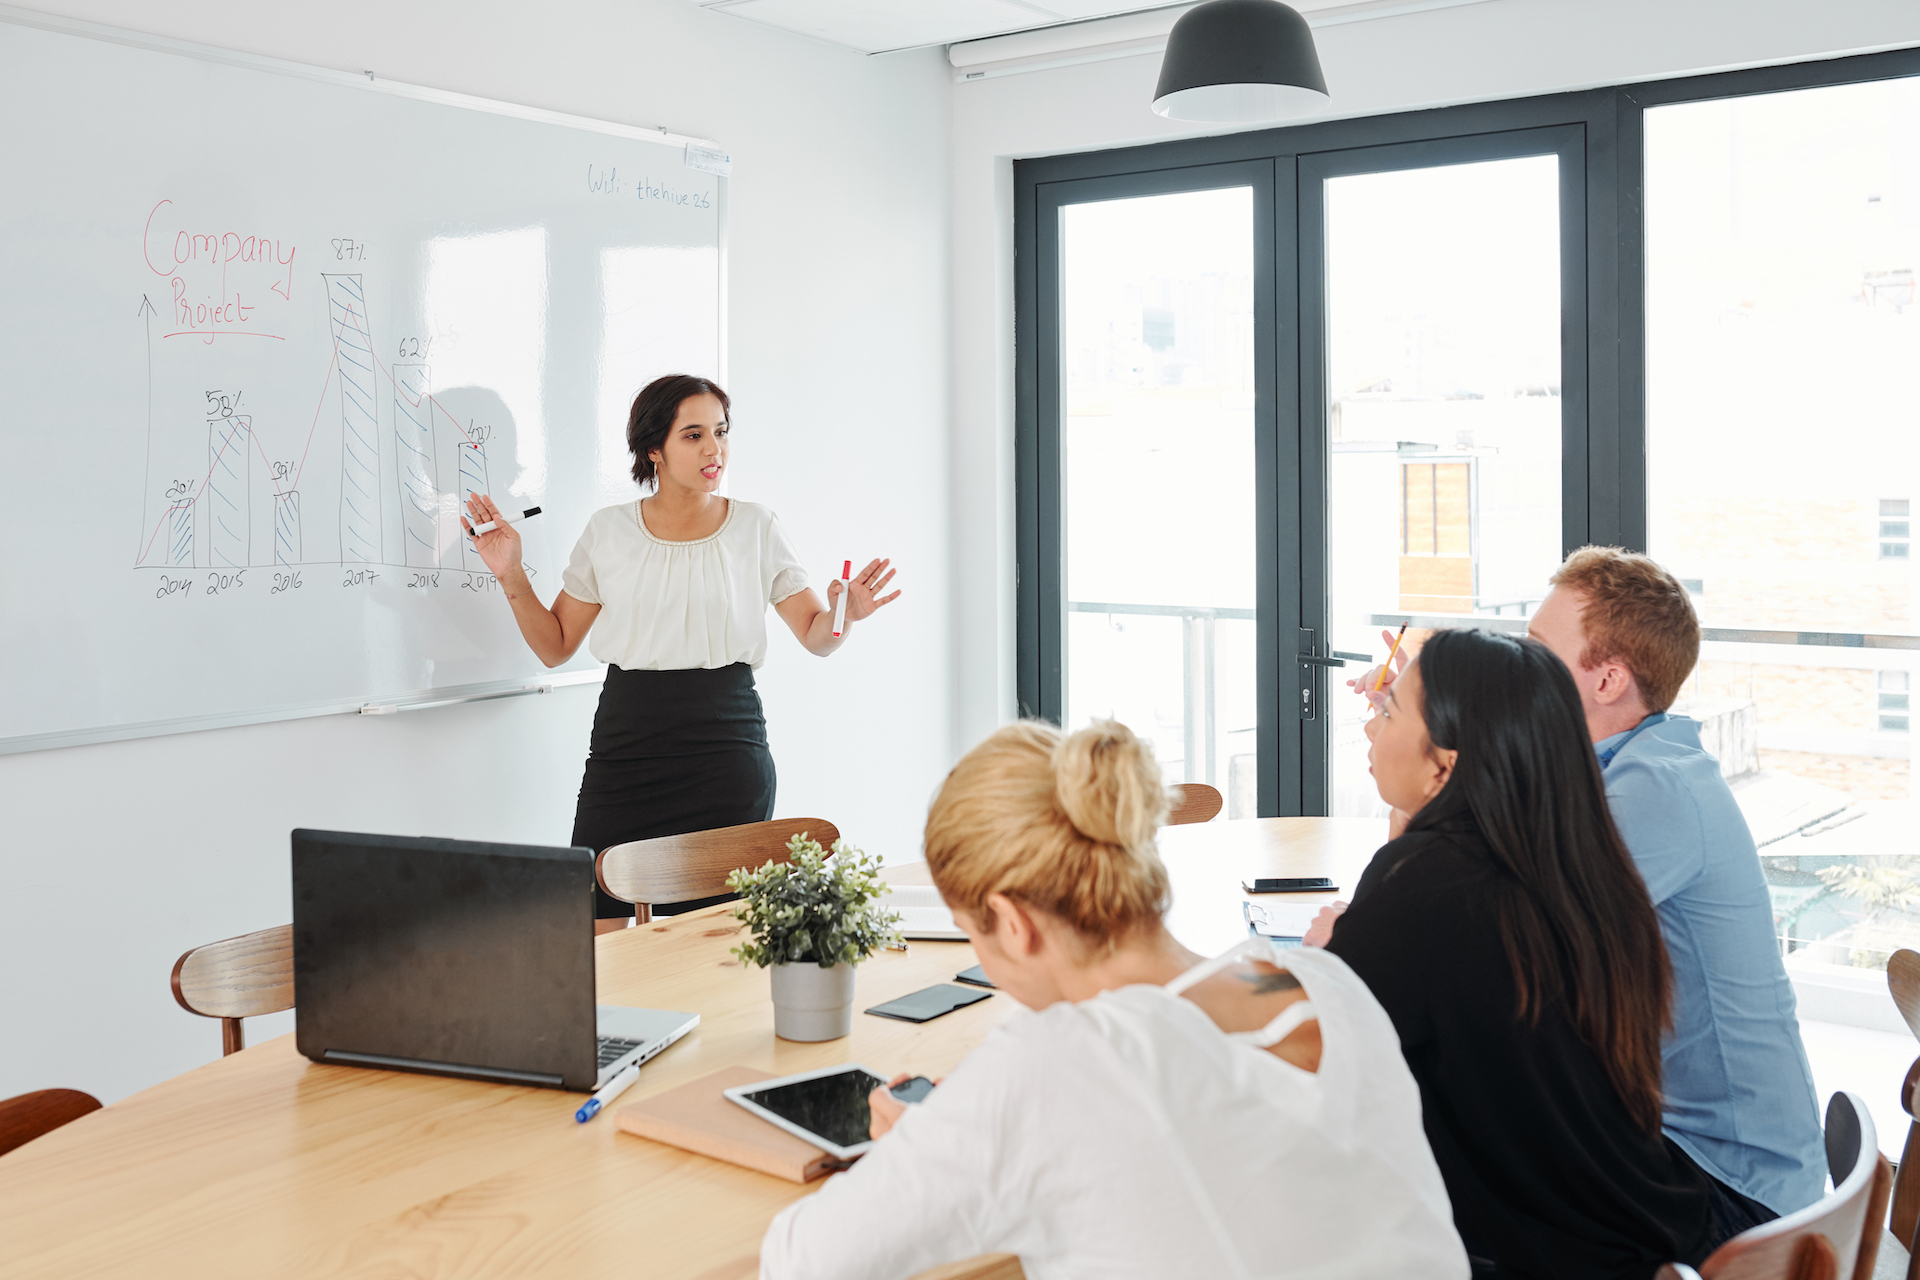 Businesswoman standing near the whiteboard and giving presentation on business strategy